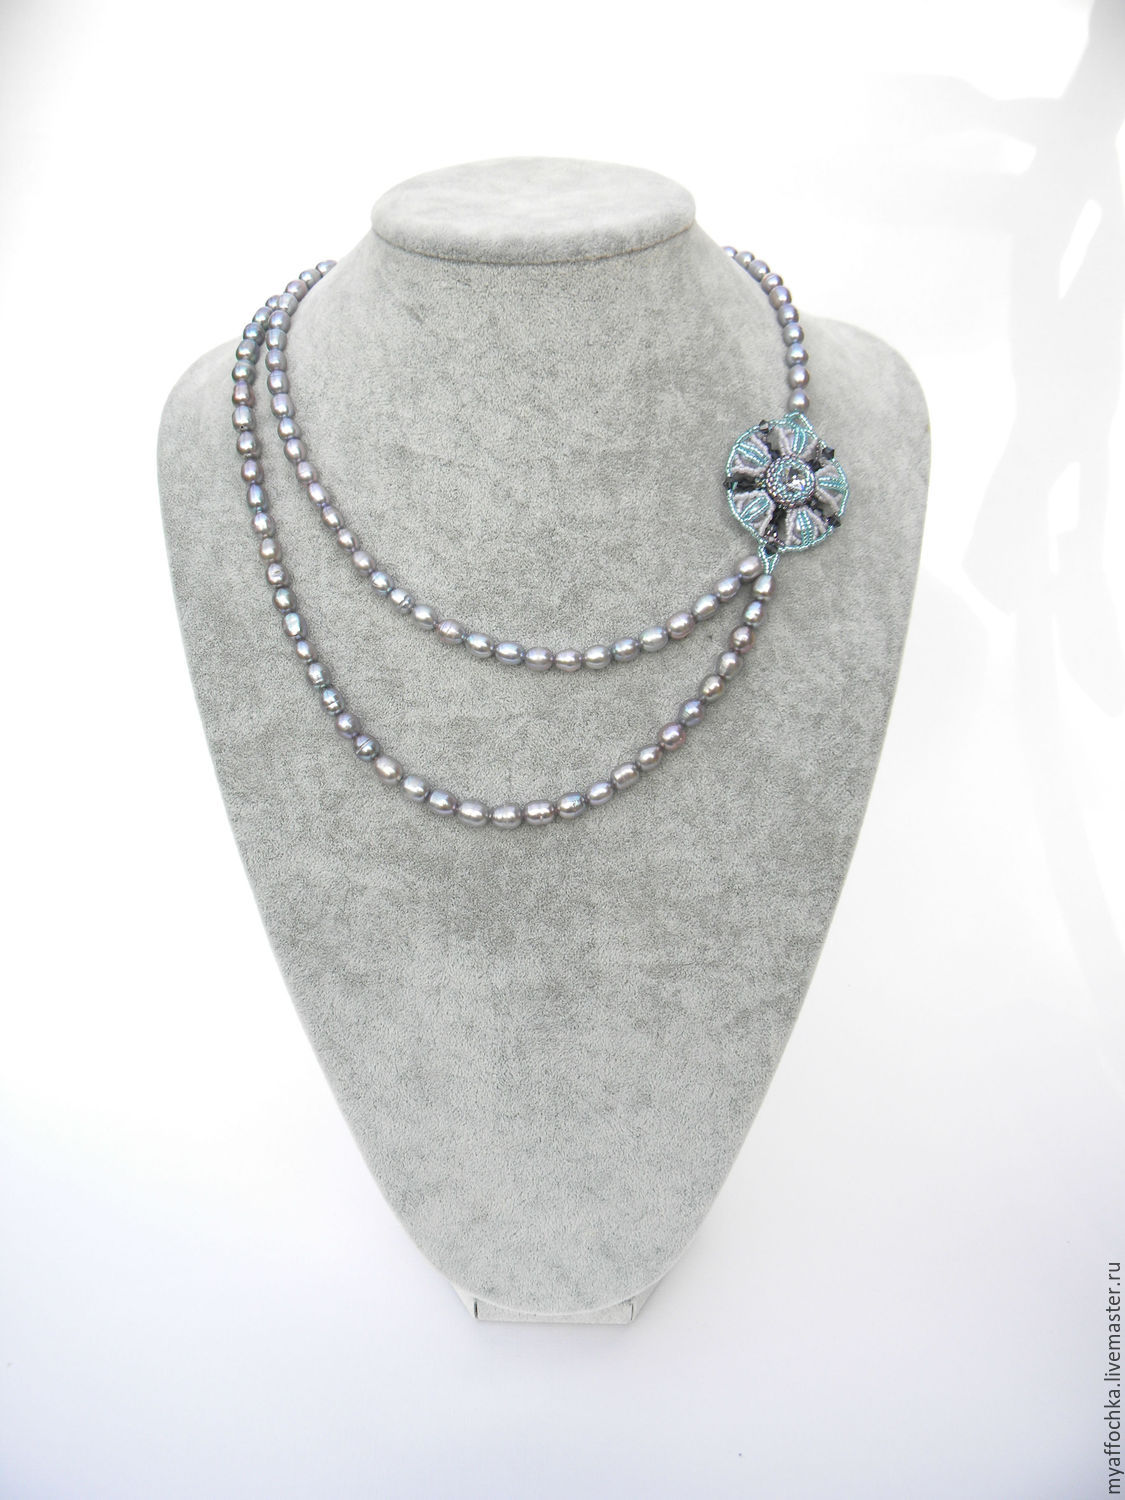 asymmetrical necklace pearl dew from japanese beads, freshwater pearls gray color with shimmer and crystal and bicone swarovski (swarovski).